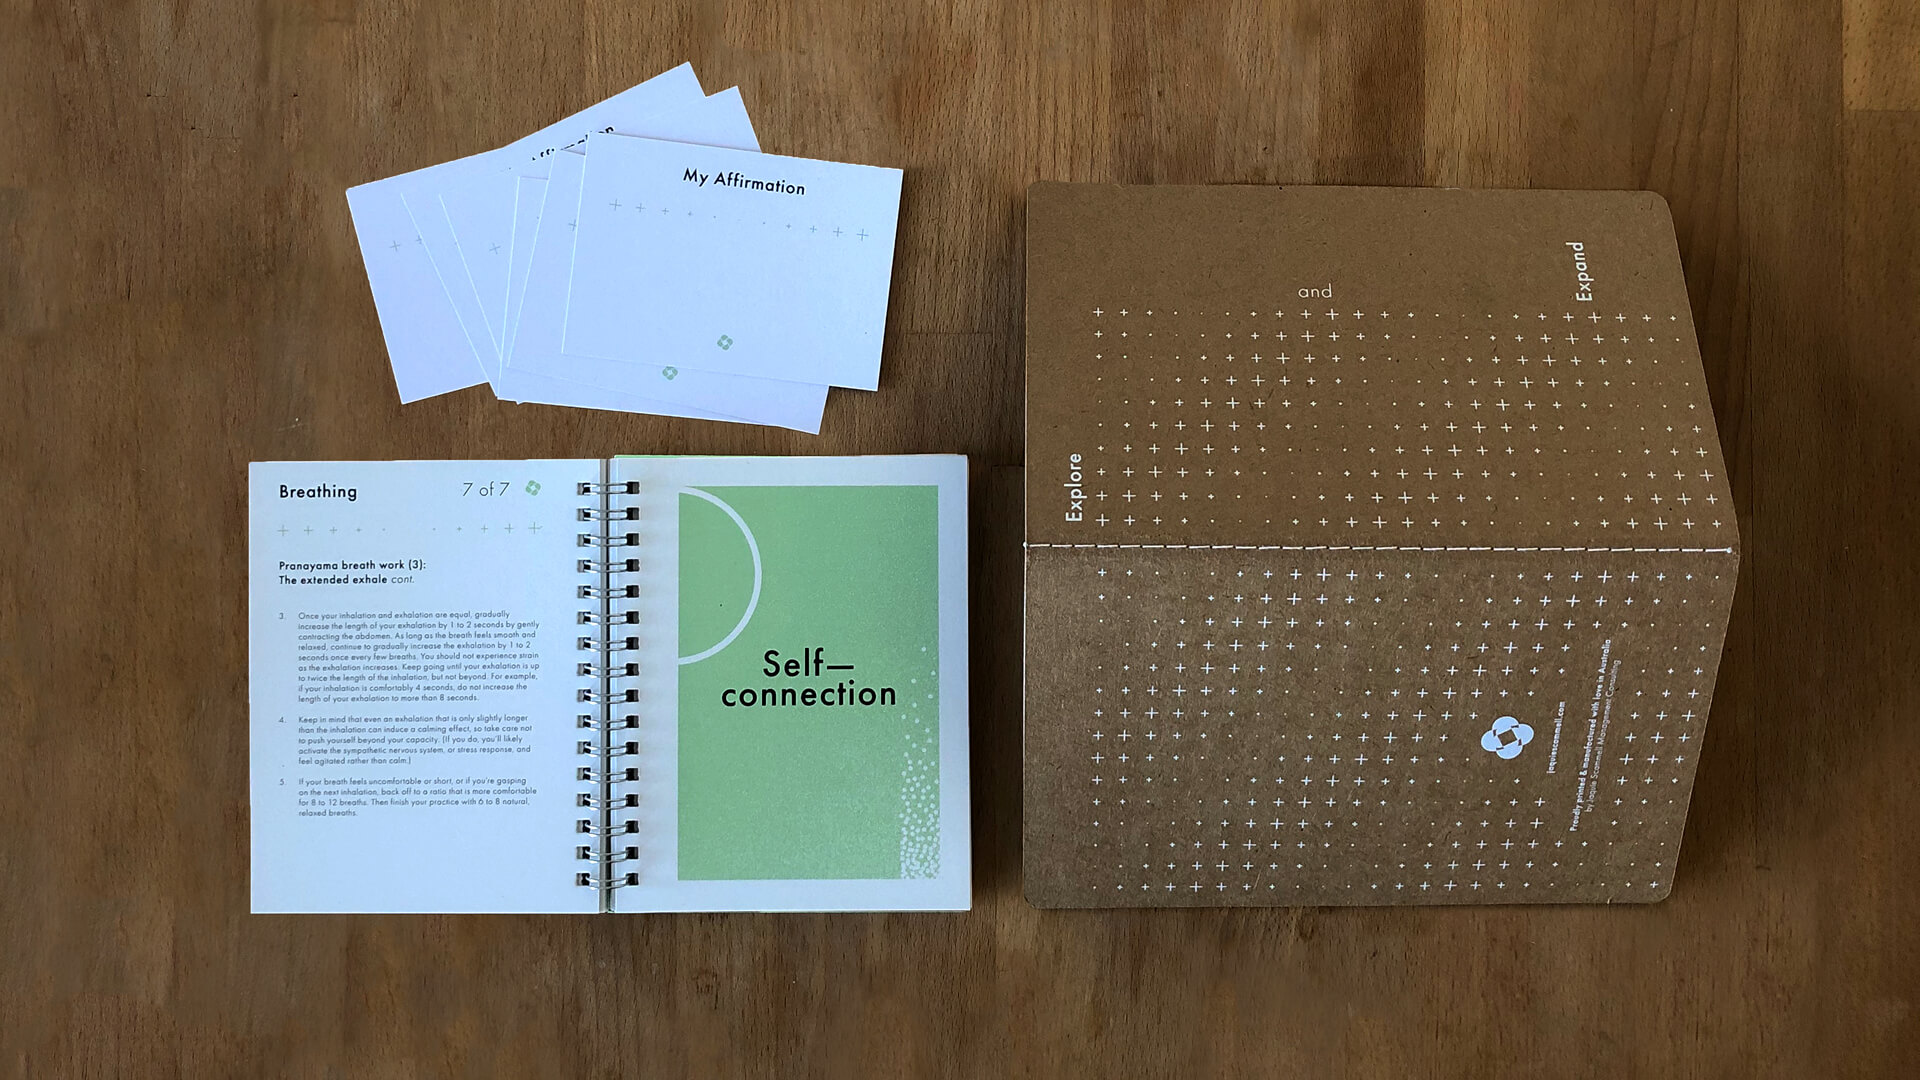 Jaquie-Scammell-Retreat-Printed-Materials-2-Open